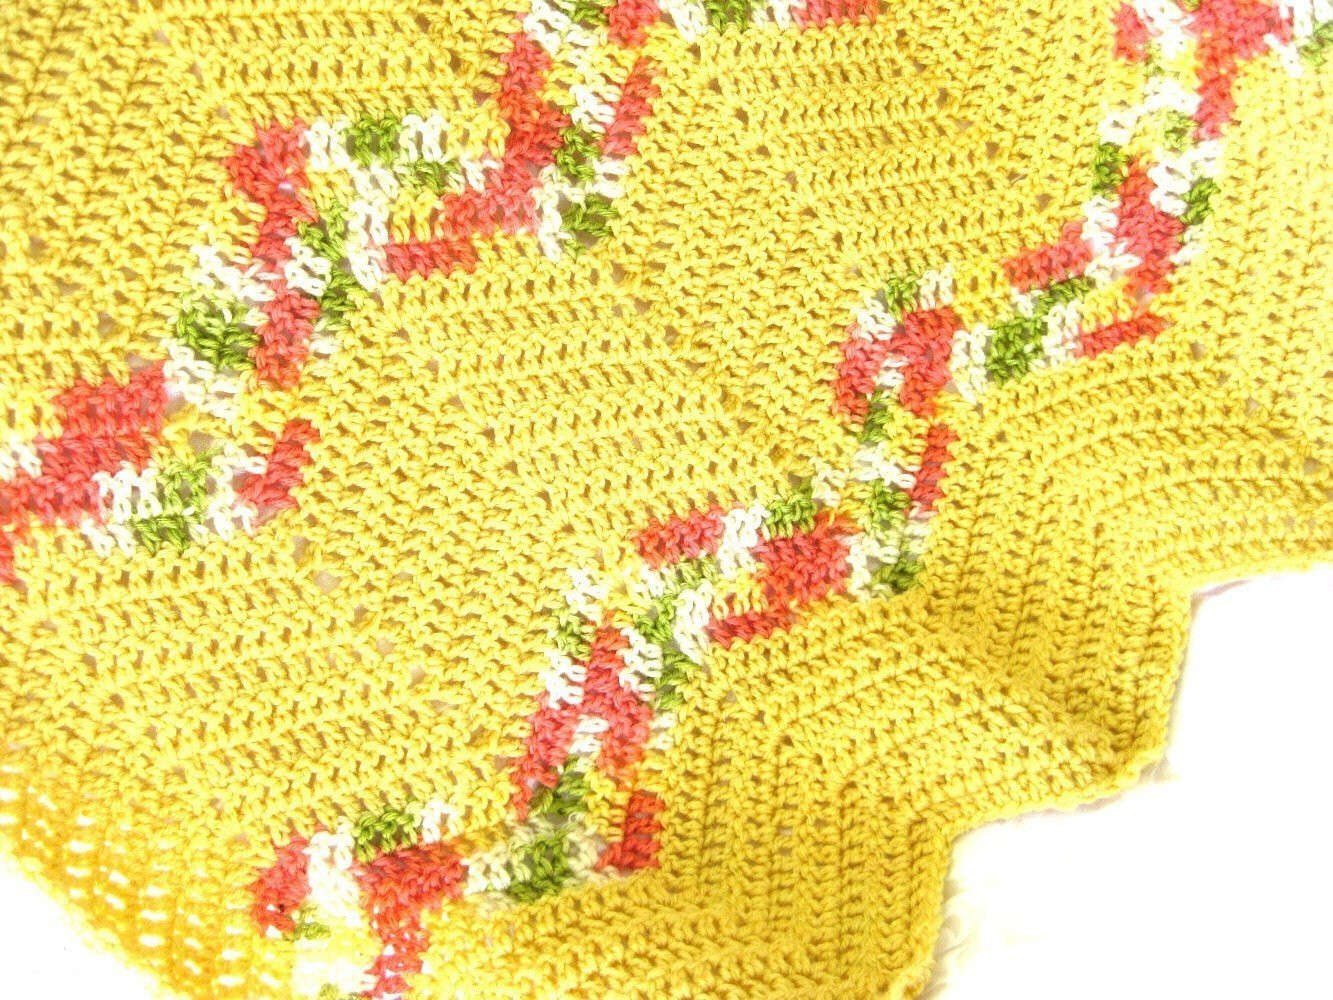 Free Easy Crochet Patterns Inspirational Free Easy Afghan Crochet Pattern Of Superb 49 Images Free Easy Crochet Patterns